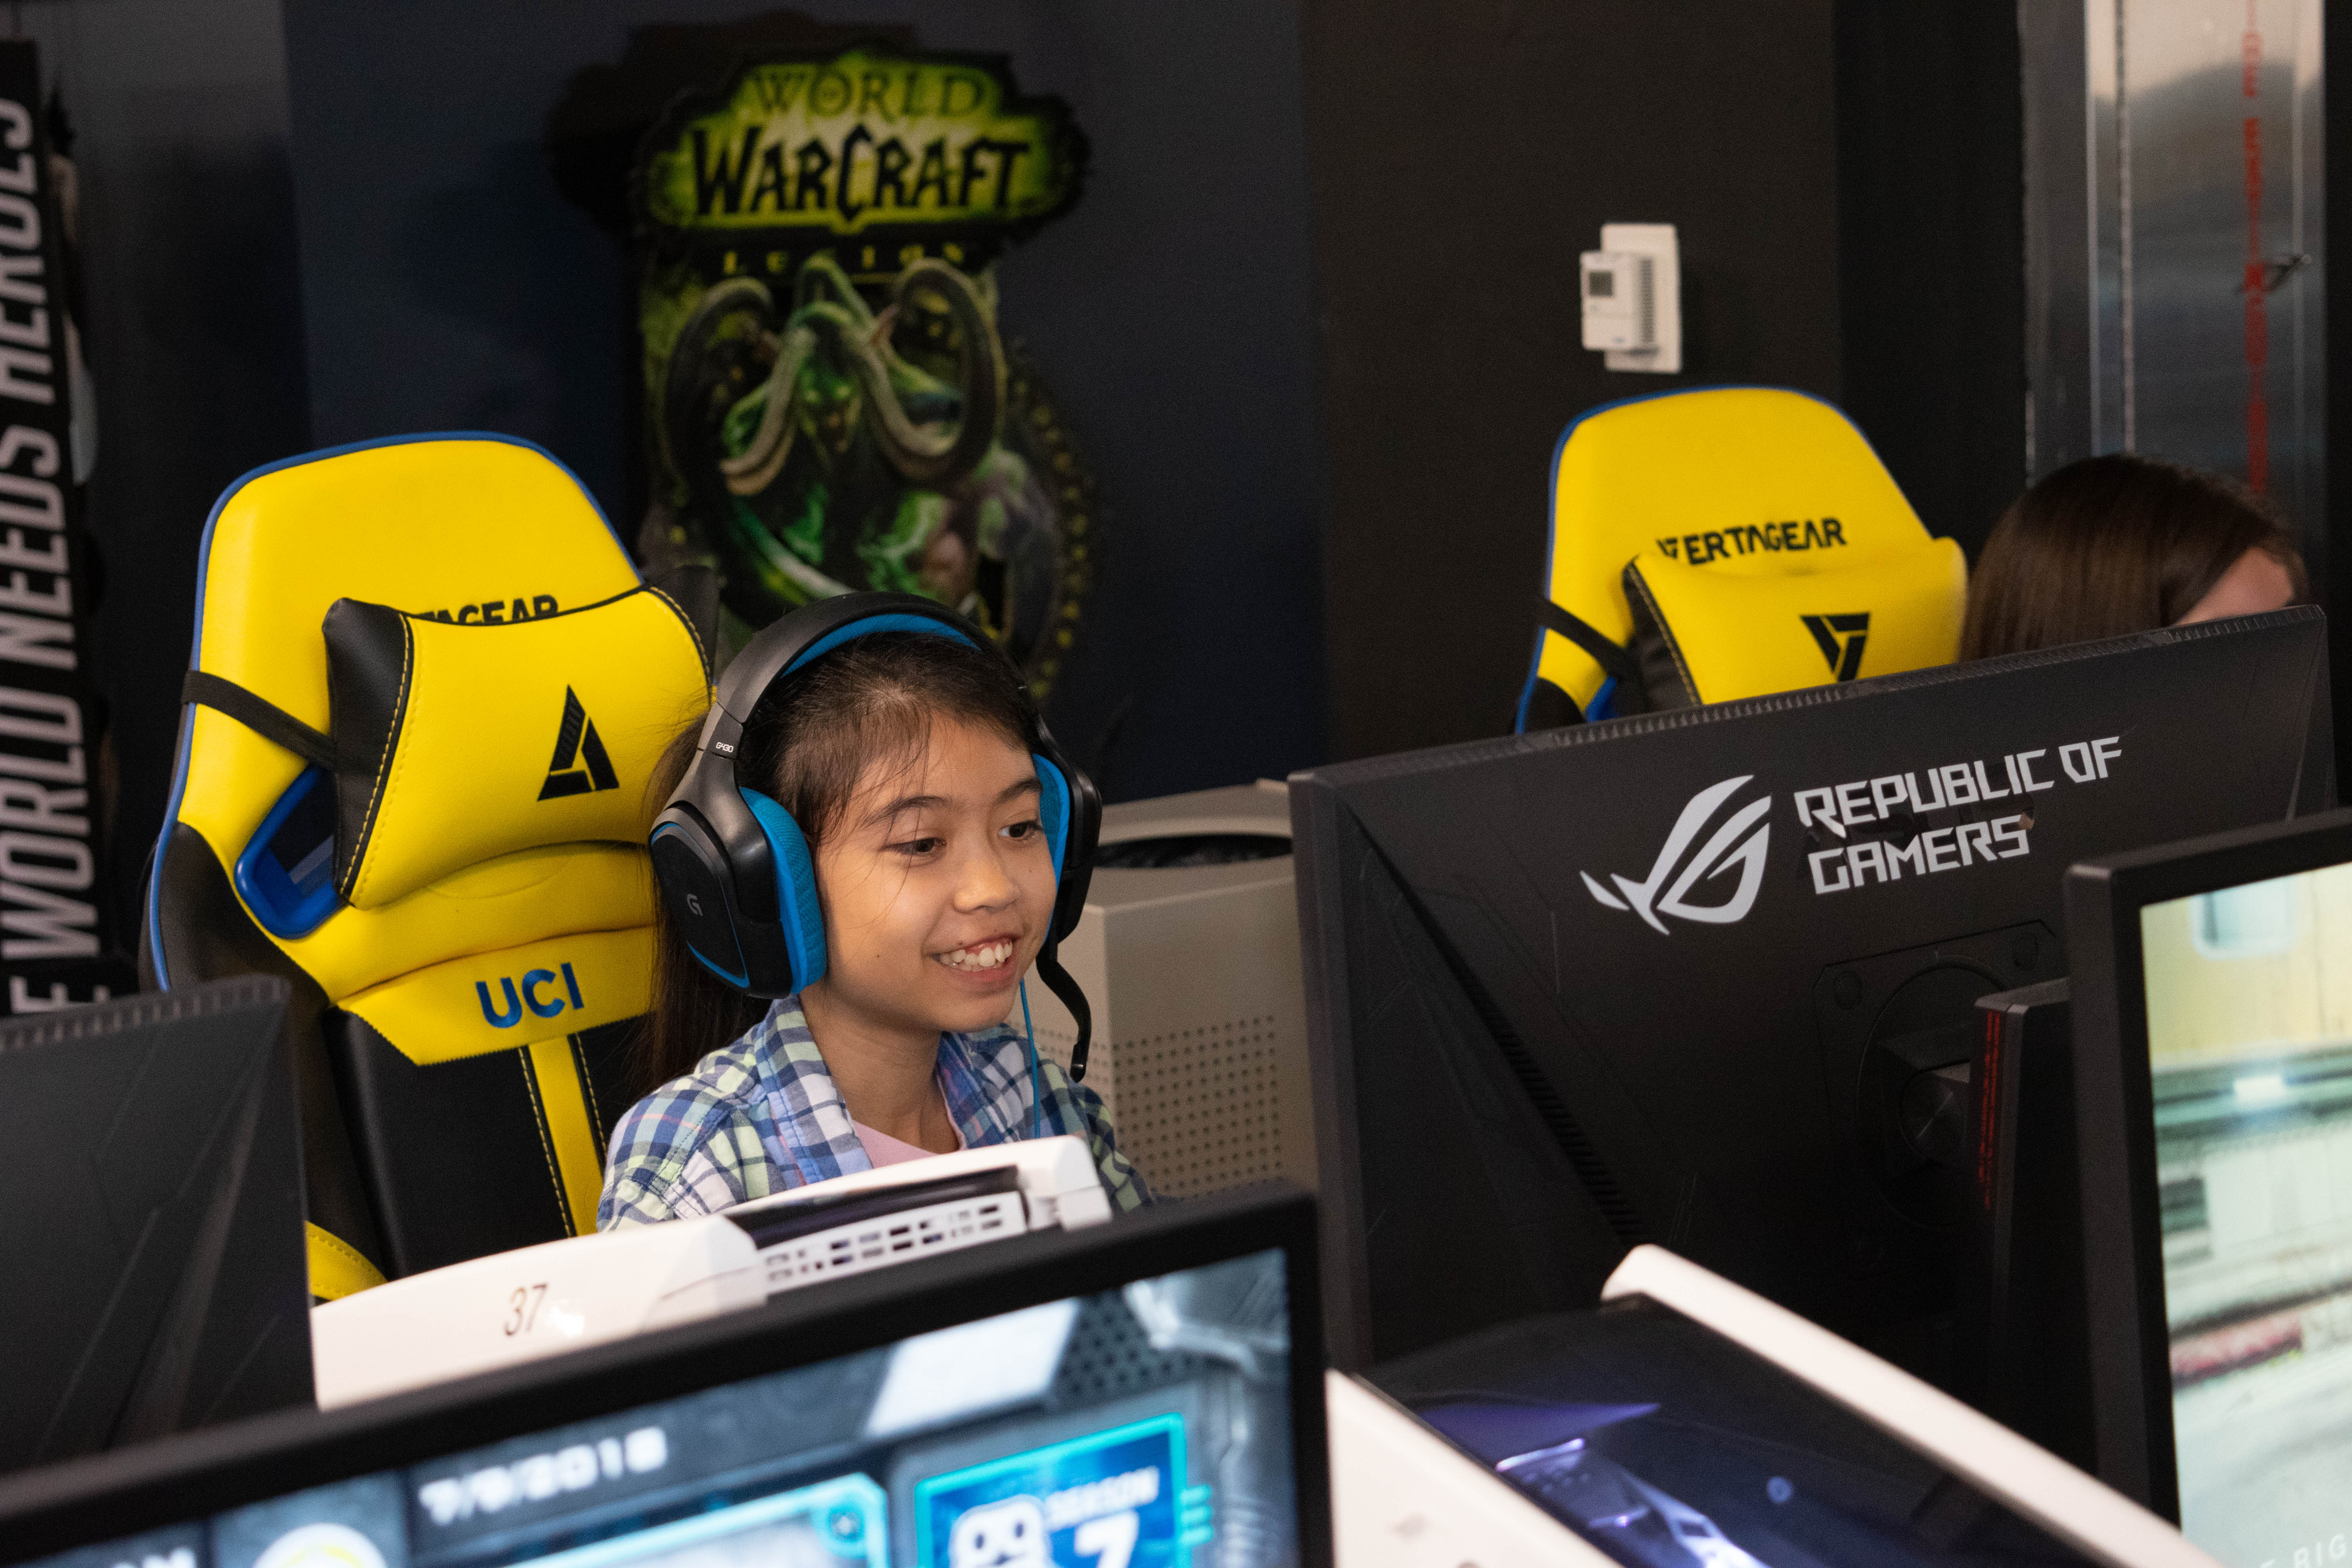 One of the campers enjoying a game of League of Legends with UCI Esports' Championship Team.